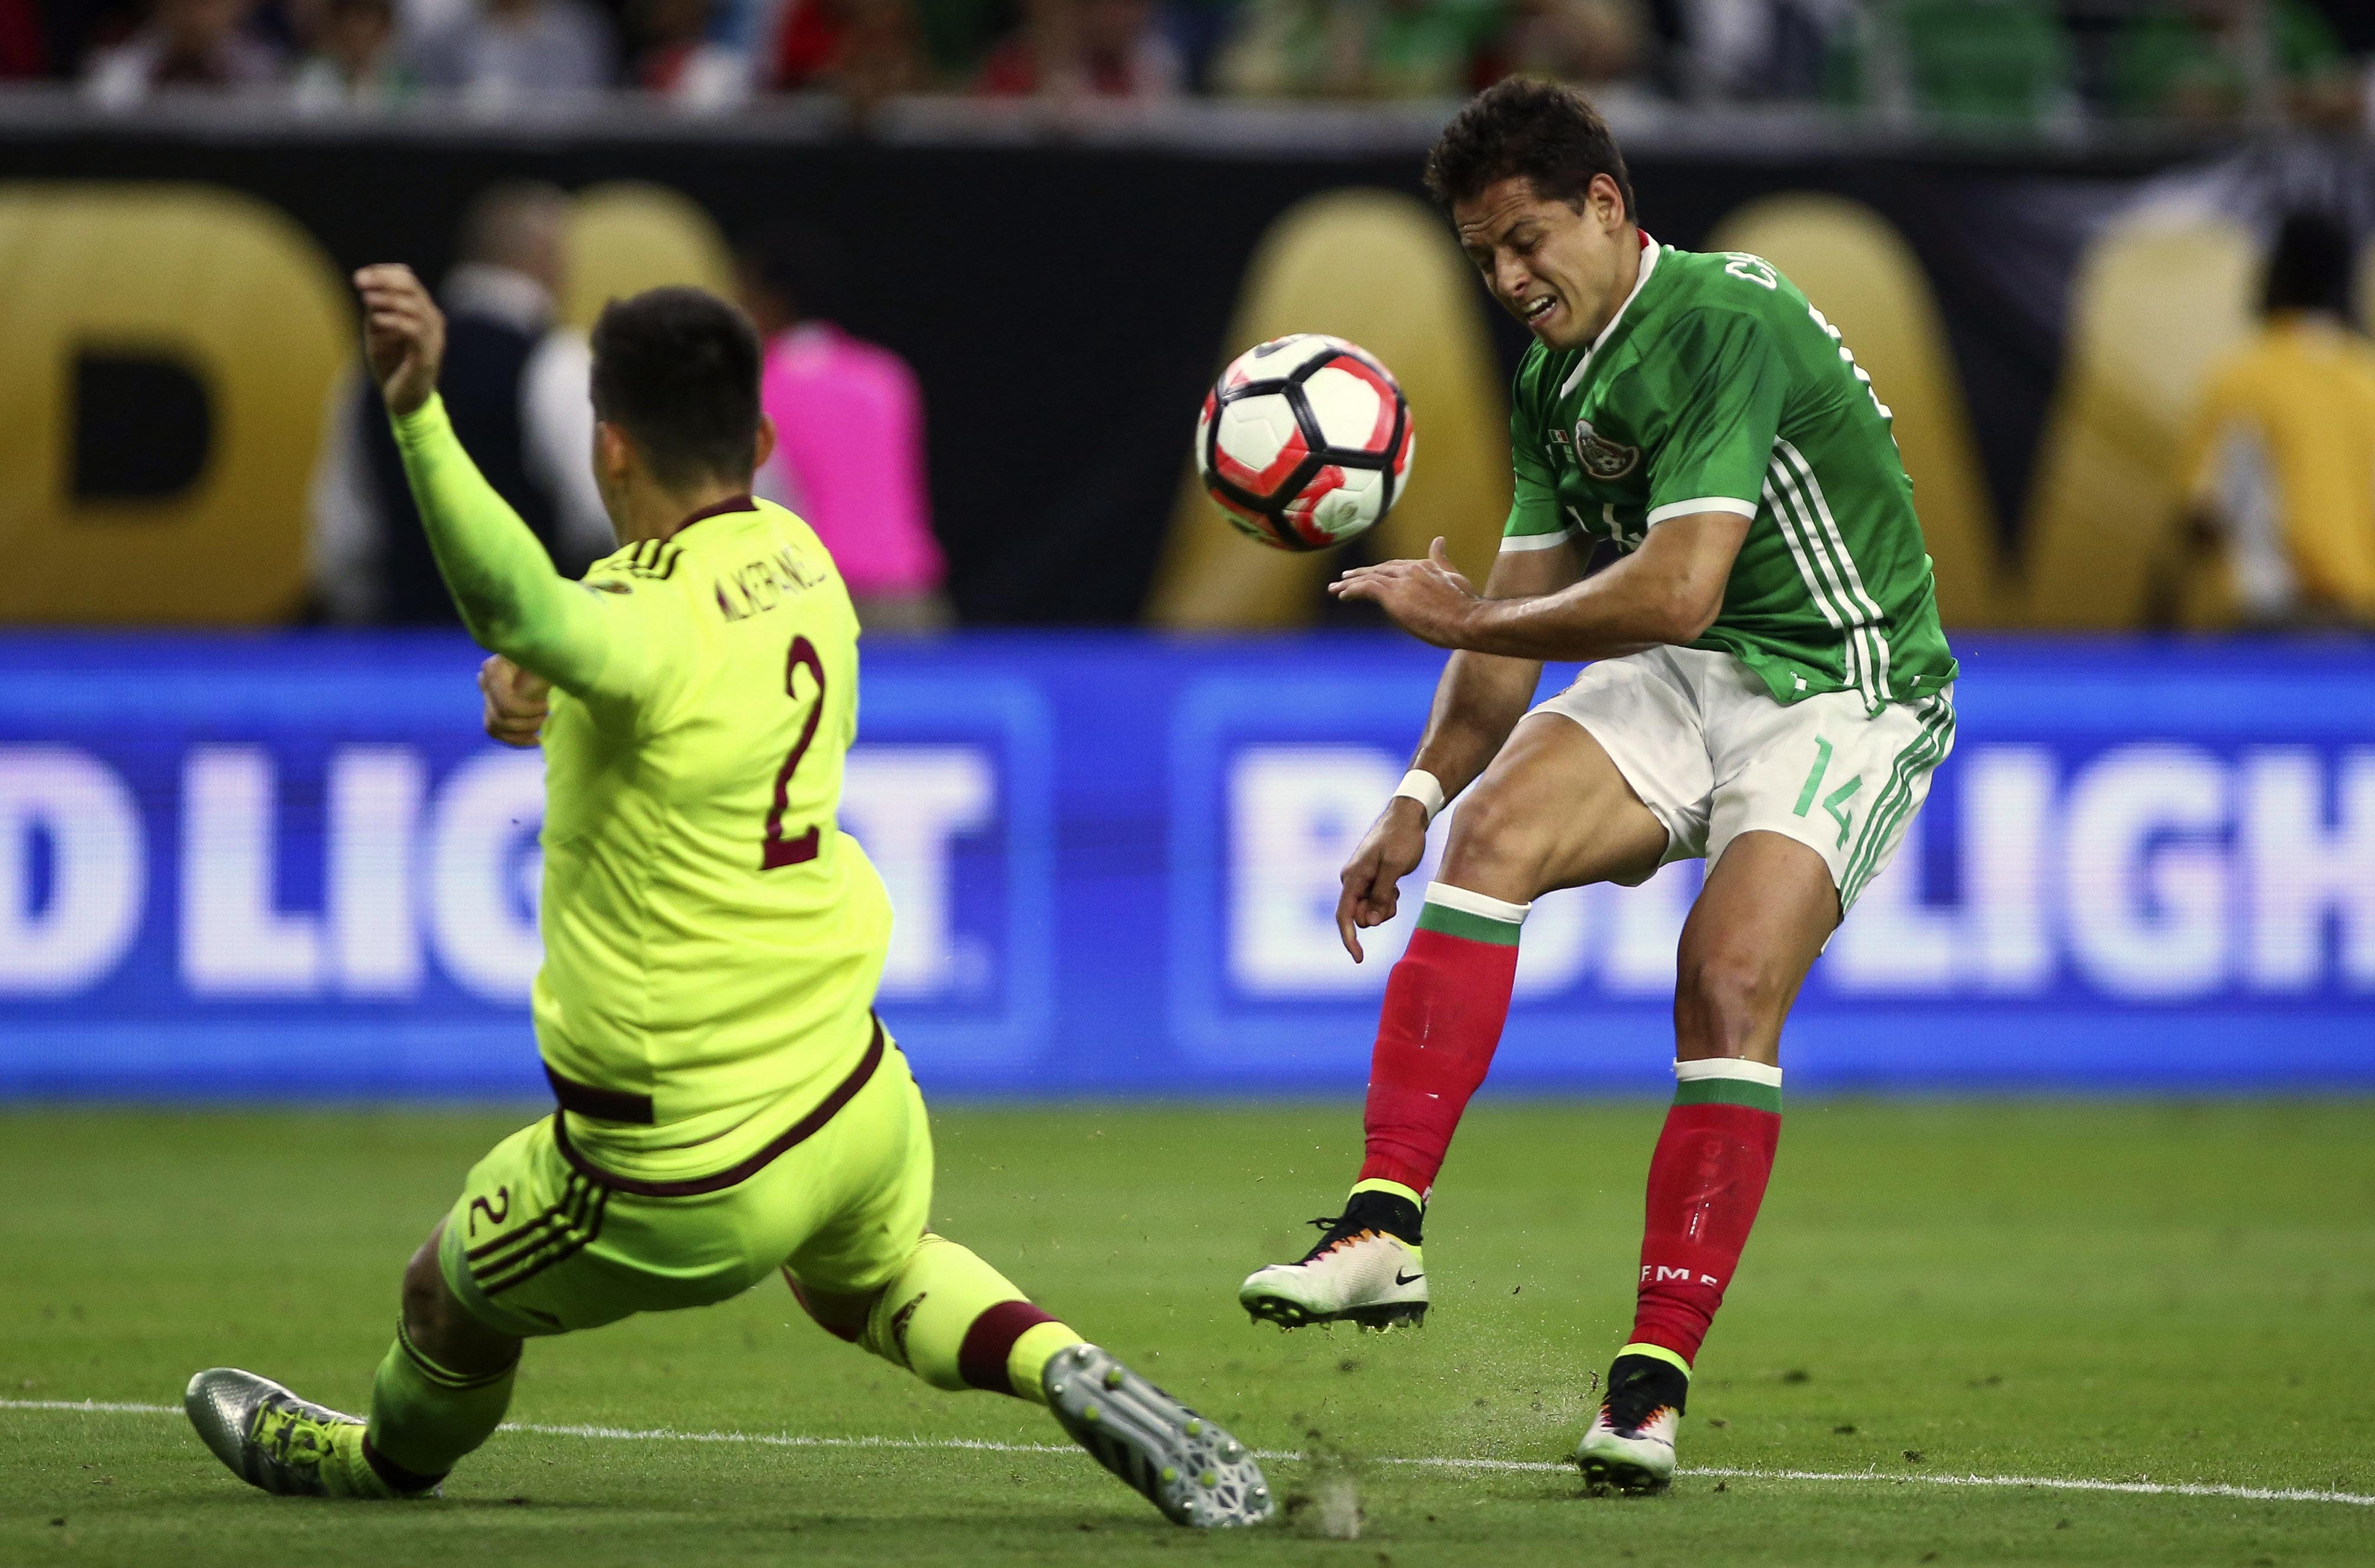 Does Chicharito feel the weight of expectations?